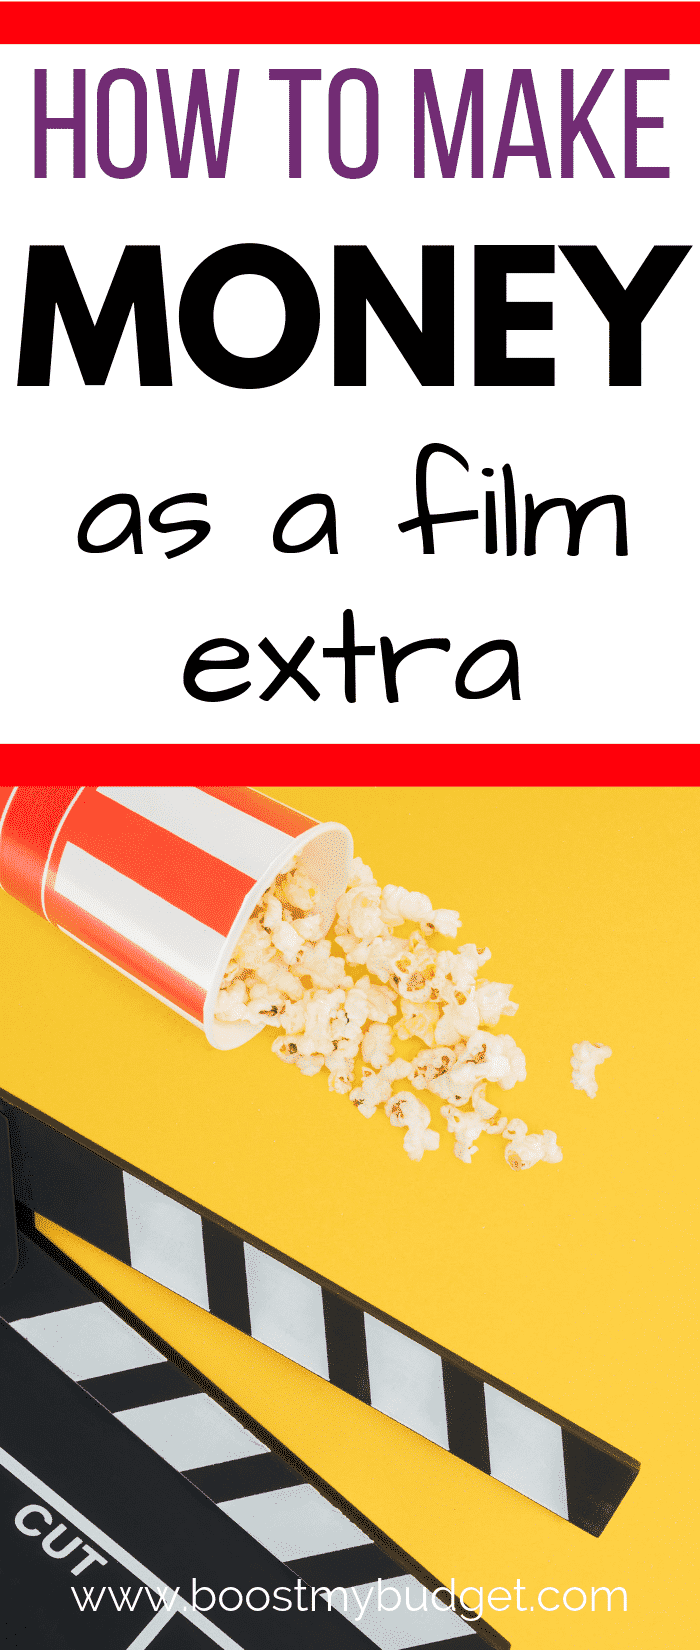 Fun side hustle idea to make extra cash in the UK! How about working as a film extra?? Here's how to get started, and how much you can expect to make, including which agency to sign up with!